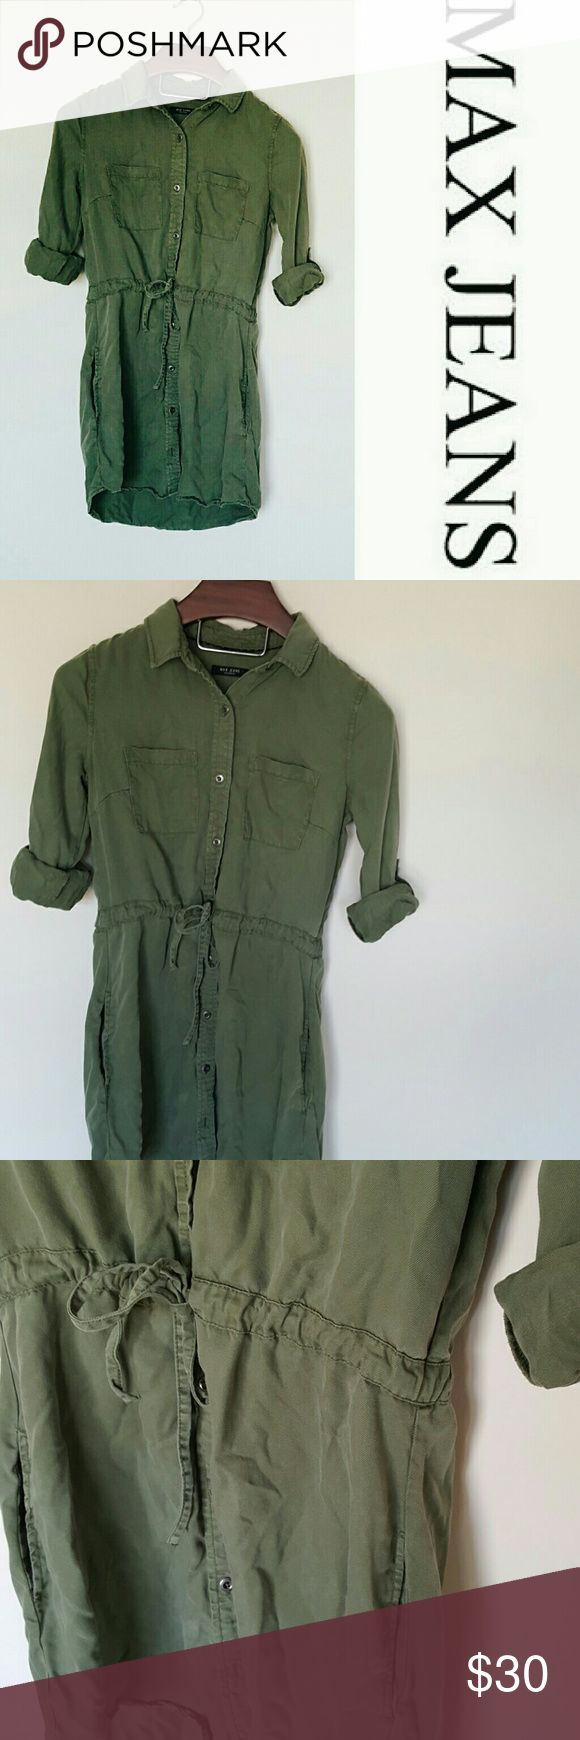 Olive green military shirt dress! Size small In excellent condition! Olive green military style shirt dress FROM max jeans. Size small. Perfect for spring and summer! Drawstring style waist. Dress is 35 inches from shoulder to hem in back. Front is 32 inches from shoulder to hem. Max jeans is sold at Nordstrom.  Bundle using the bundle feature and save! Nordstrom Dresses